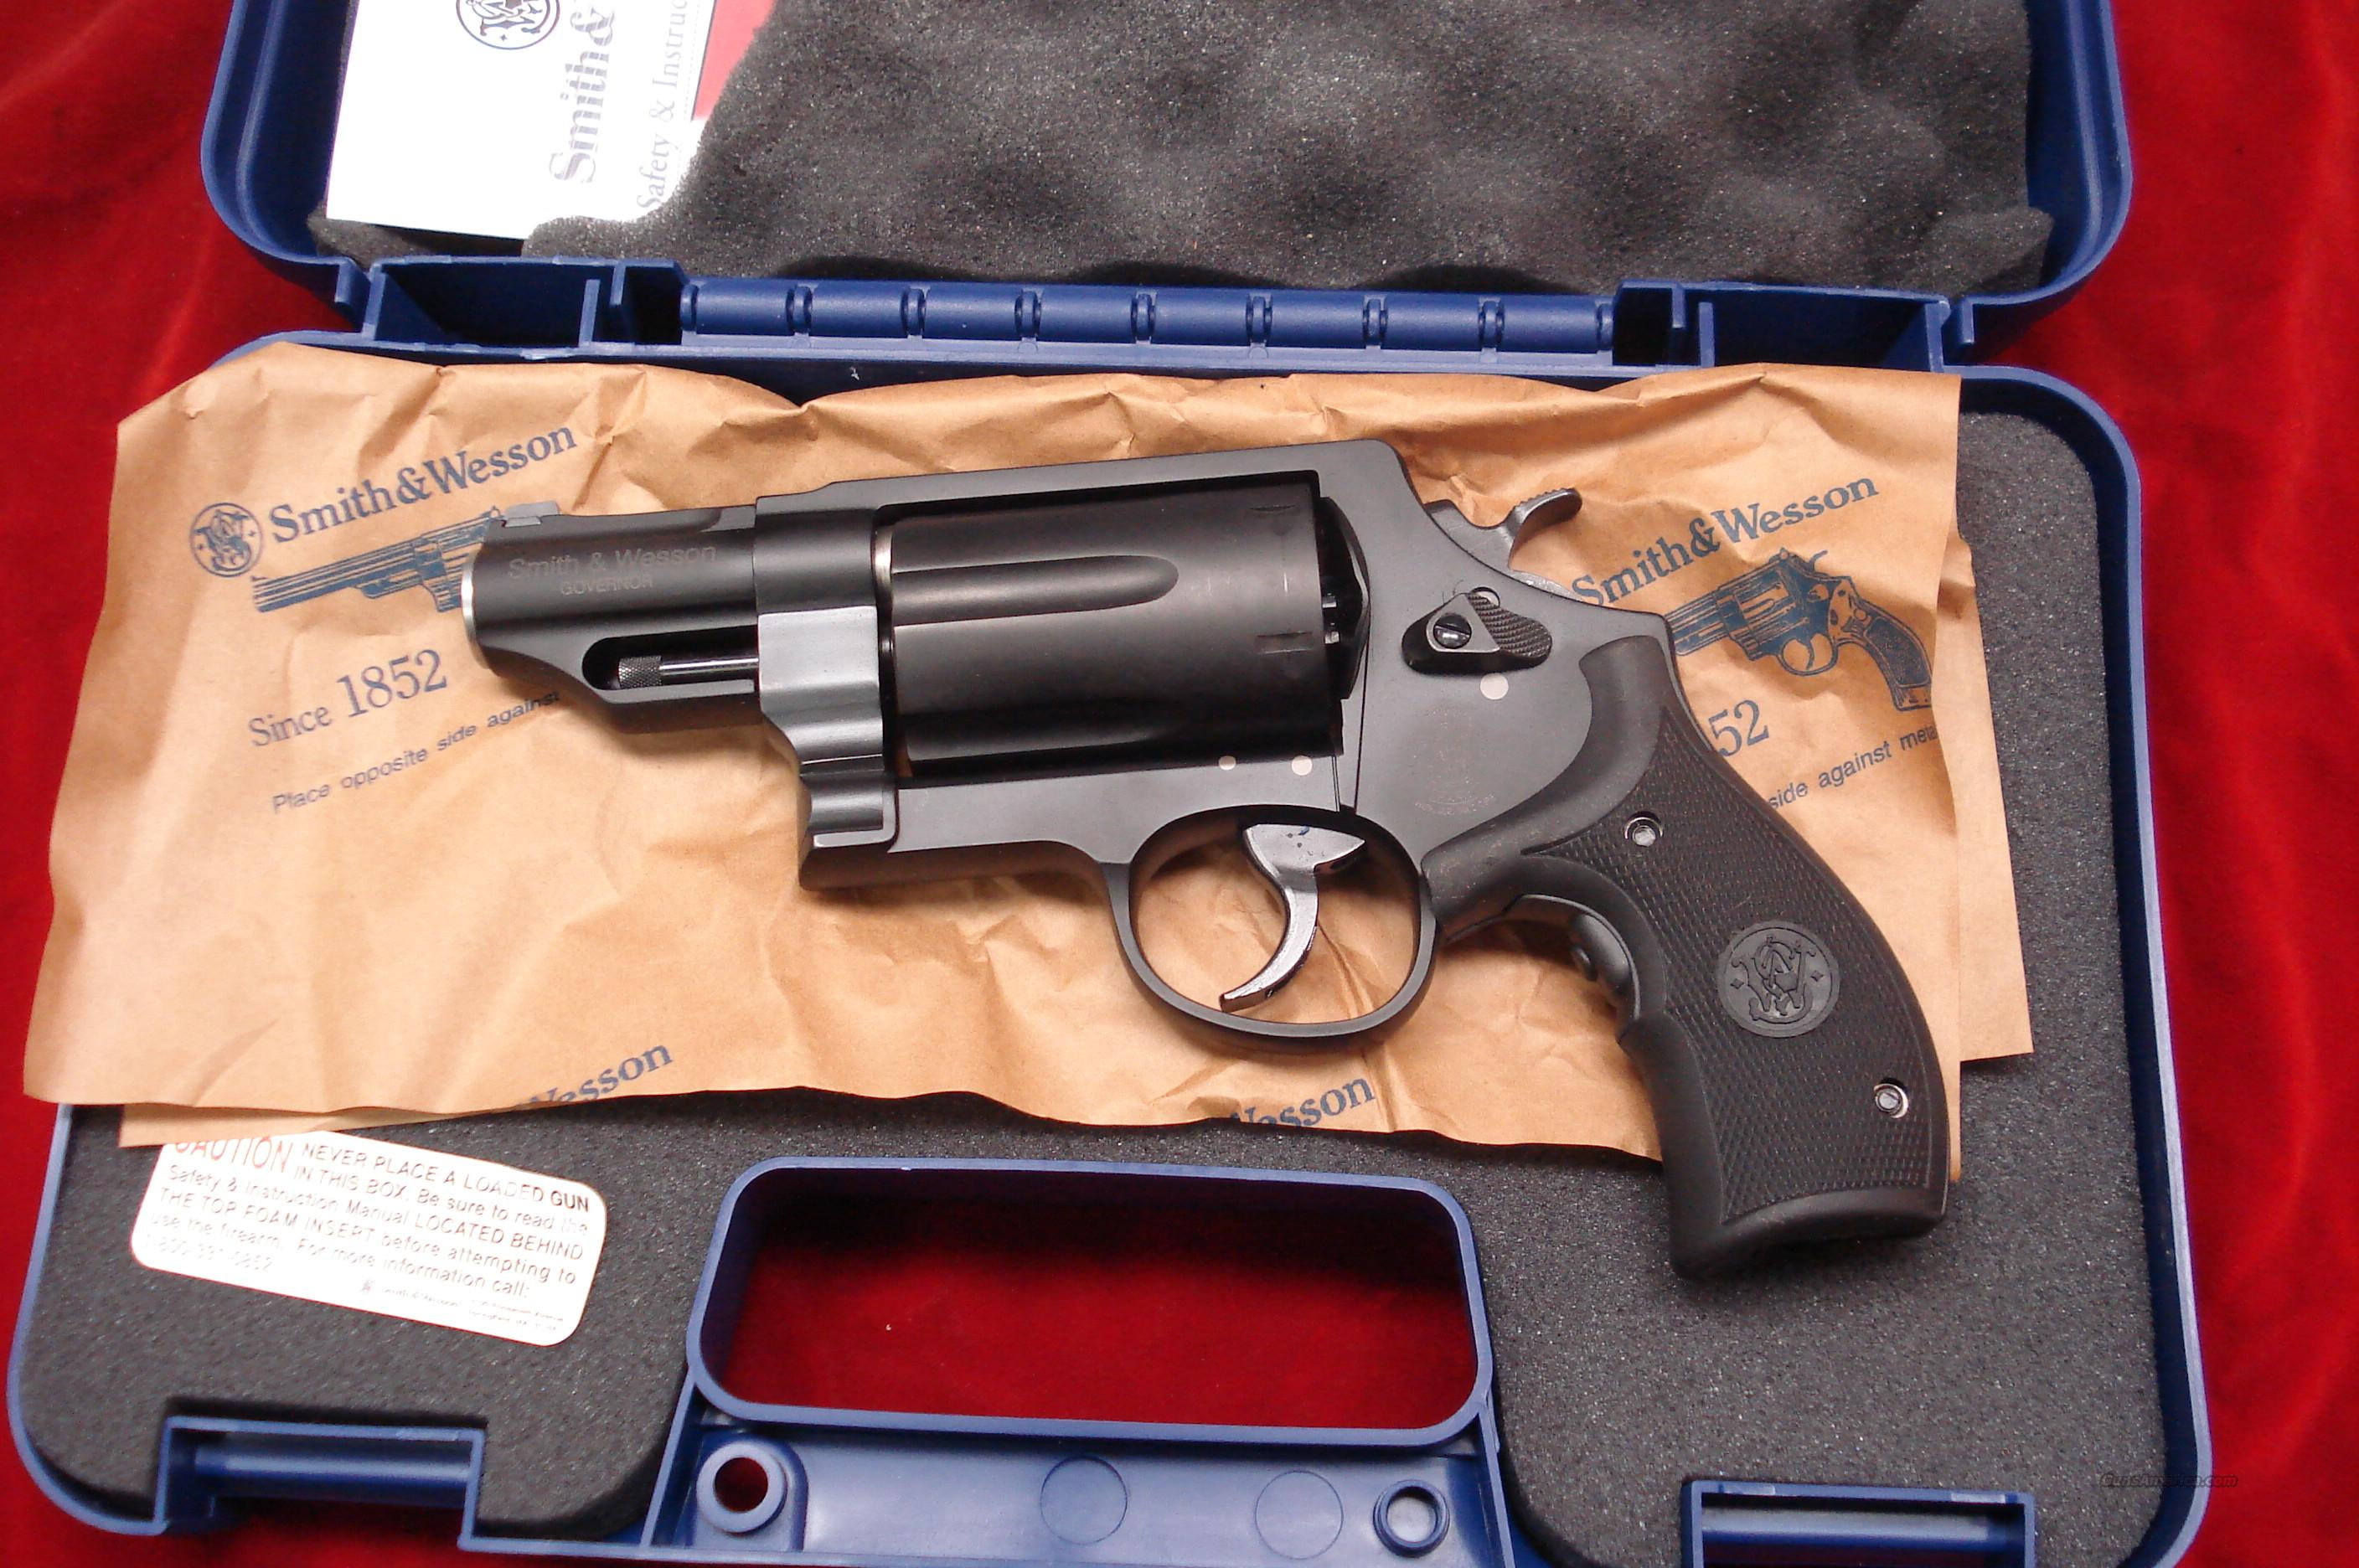 SMITH AND WESSON GOVERNOR 45COLT/45ACP/410G REVOLVER WITH LASER GRIPS NEW  Guns > Pistols > Smith & Wesson Revolvers > Full Frame Revolver